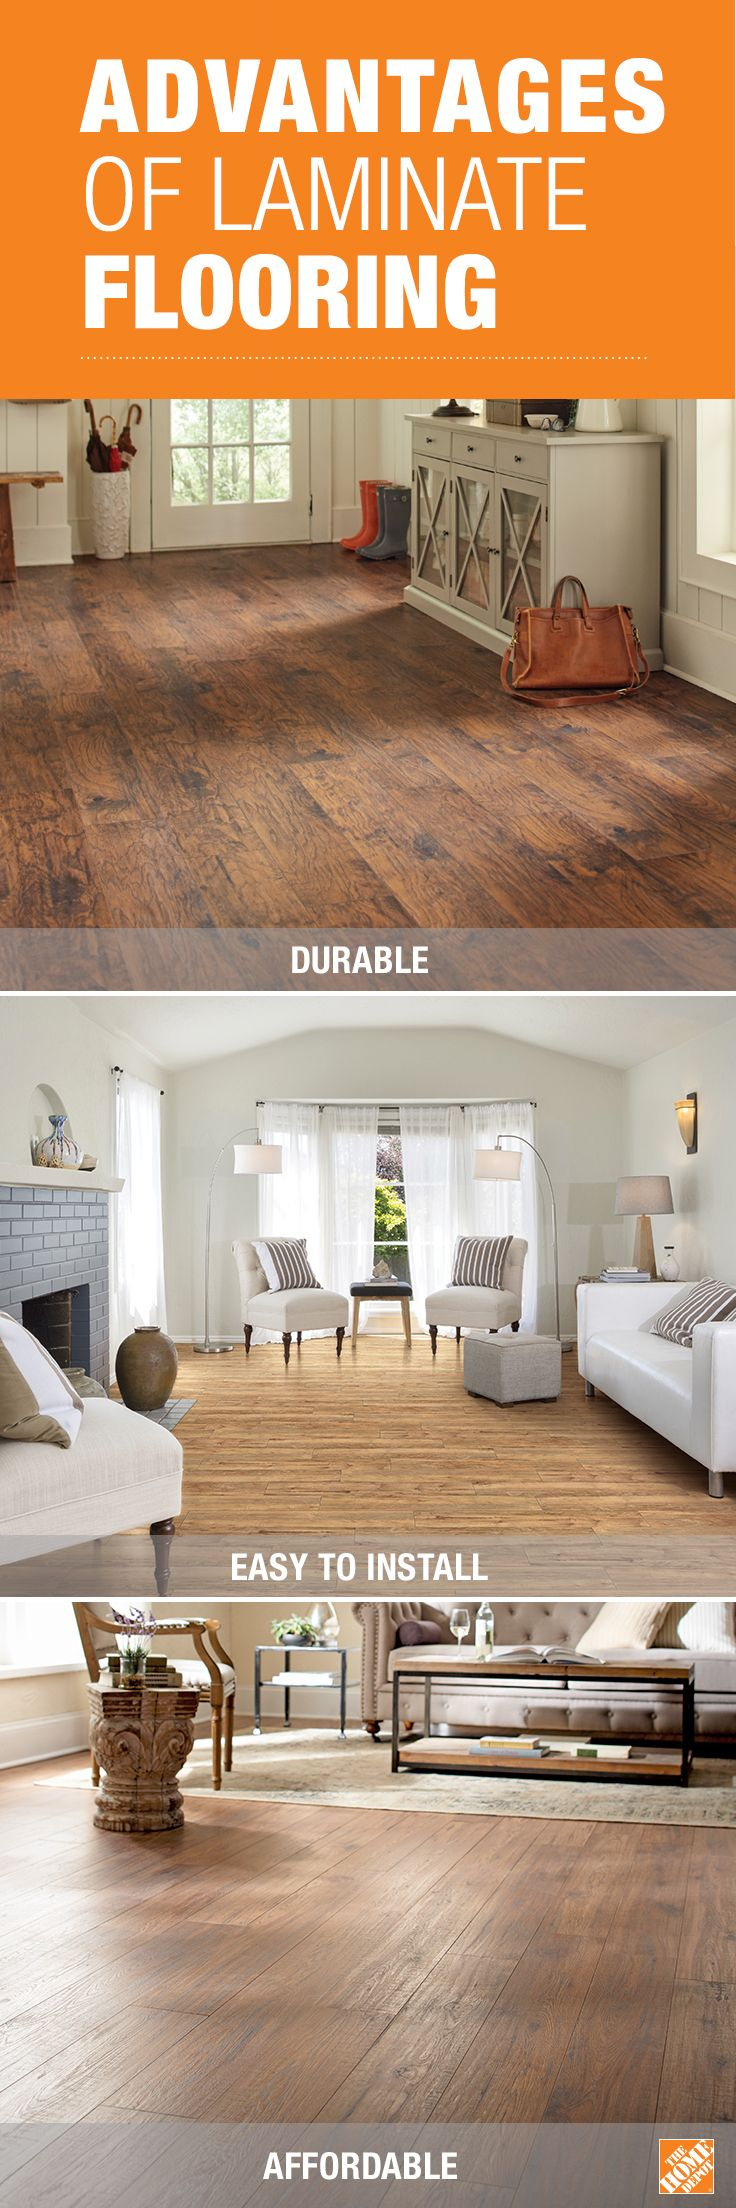 Today S Laminate Flooring Options Are Impeccably Durable Easy To Install And Affordable You Can